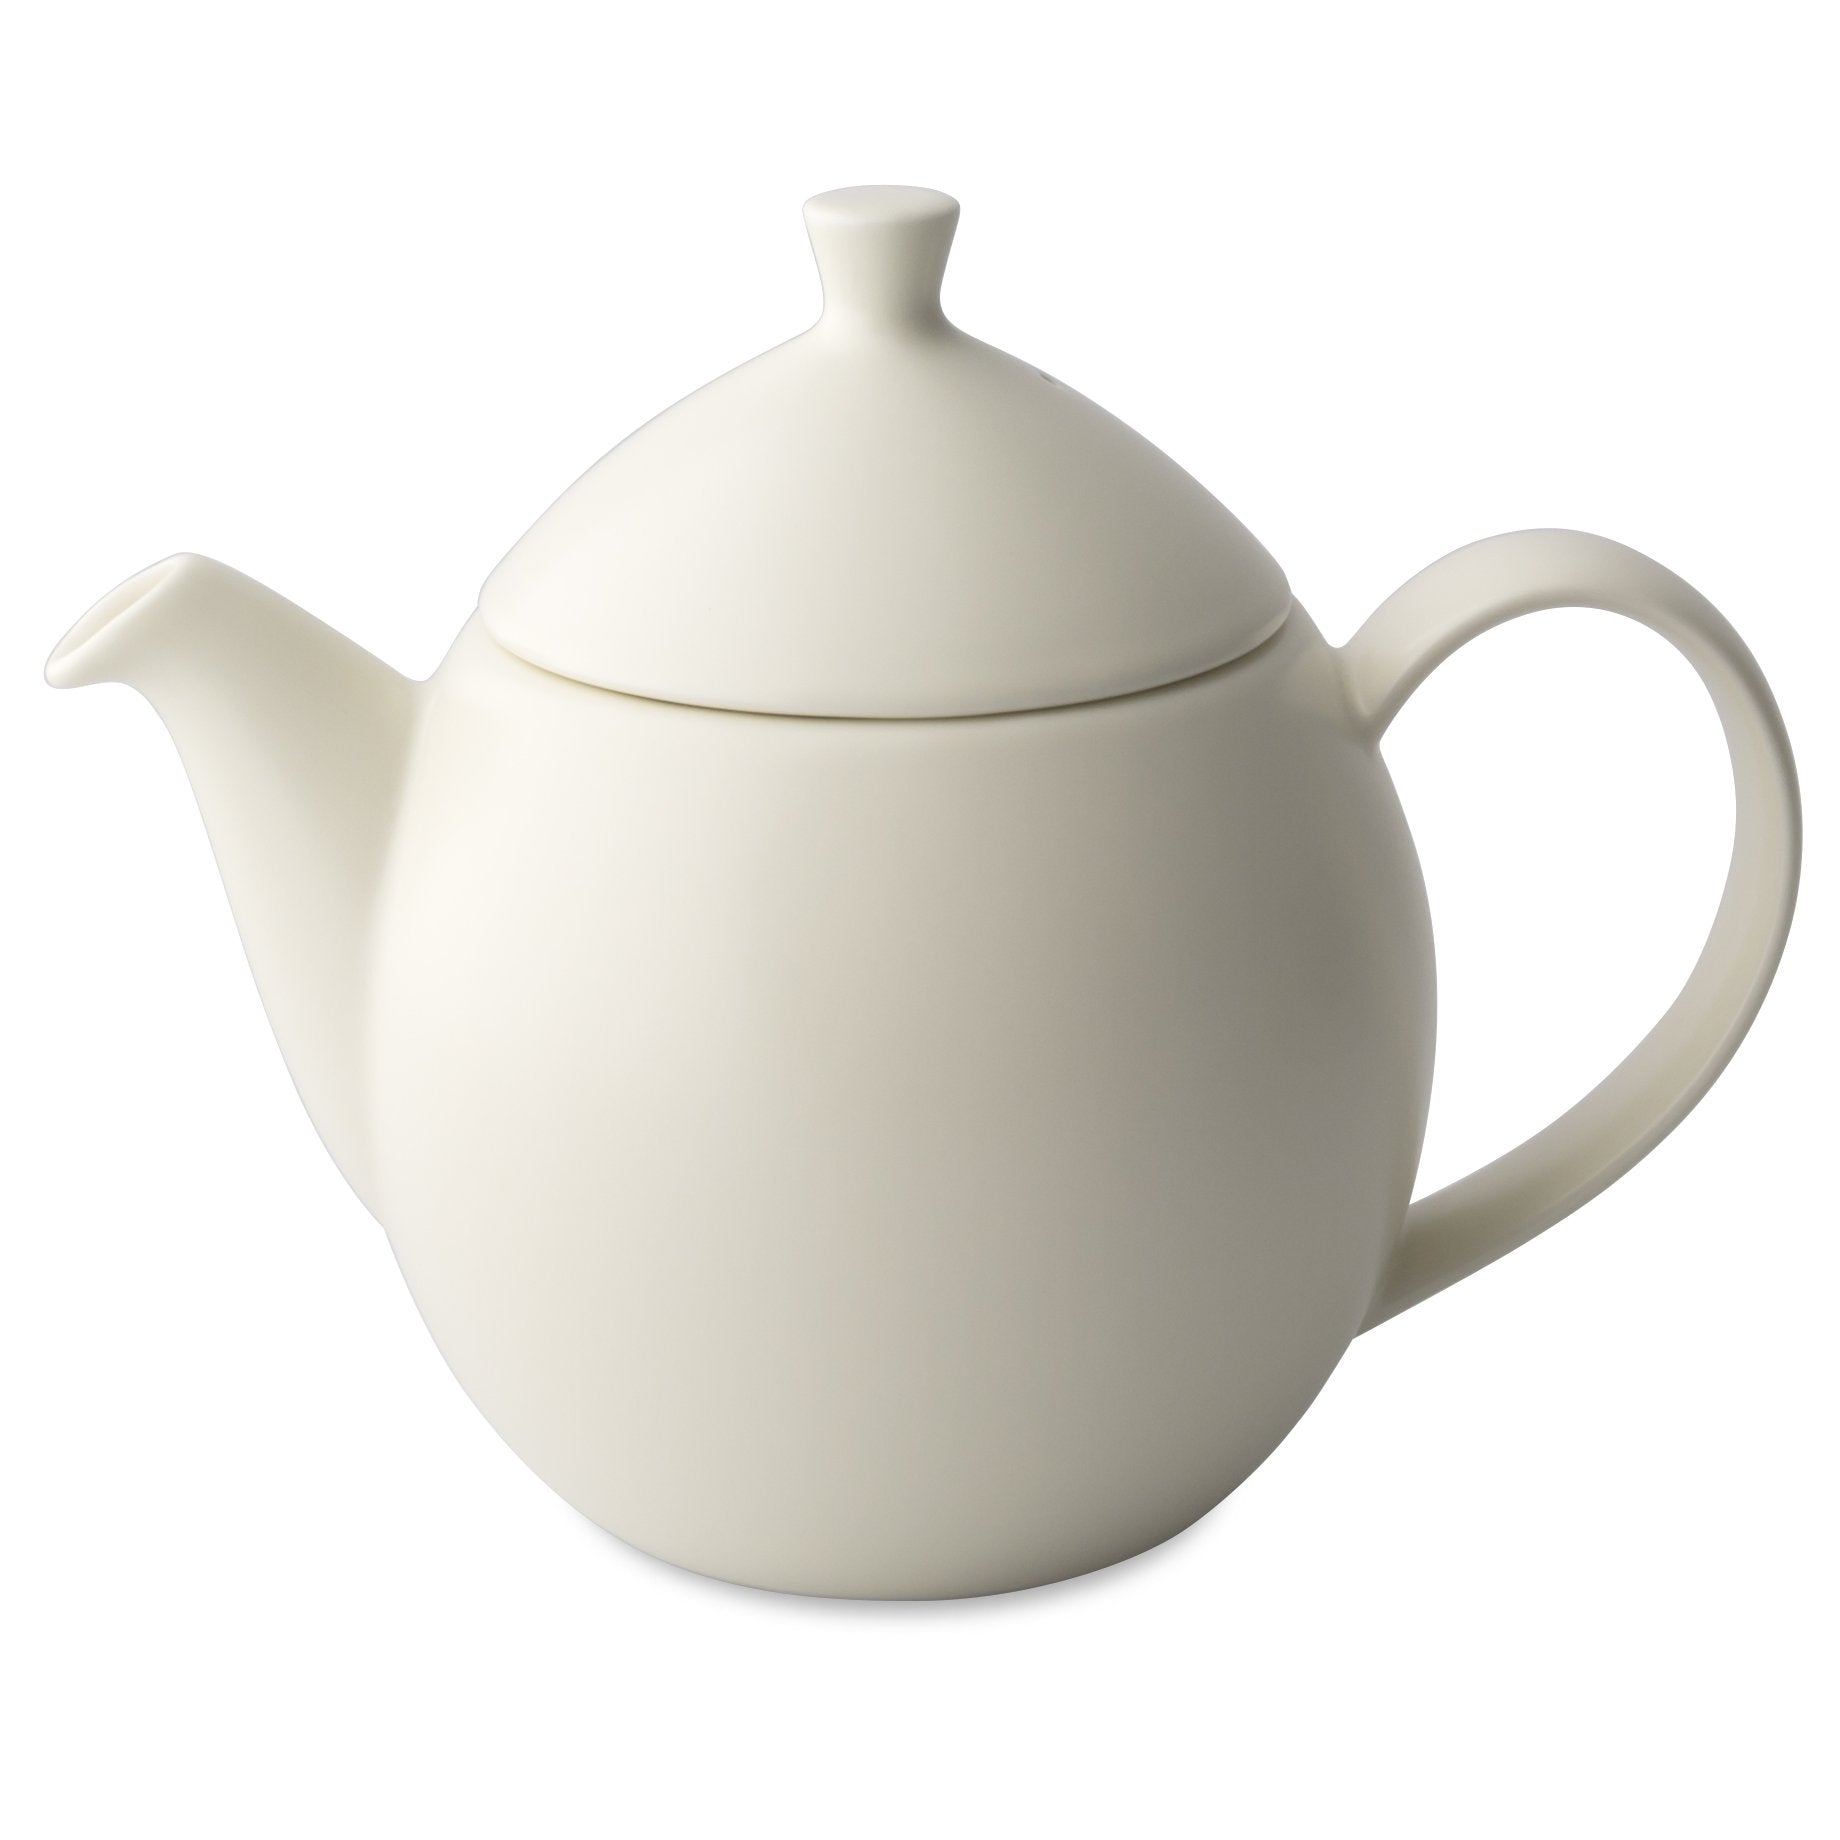 TeaLula 14 oz natural cotton white colored satin finish curve Dew Teapot with large thin curve handle and detachable tea pot lid